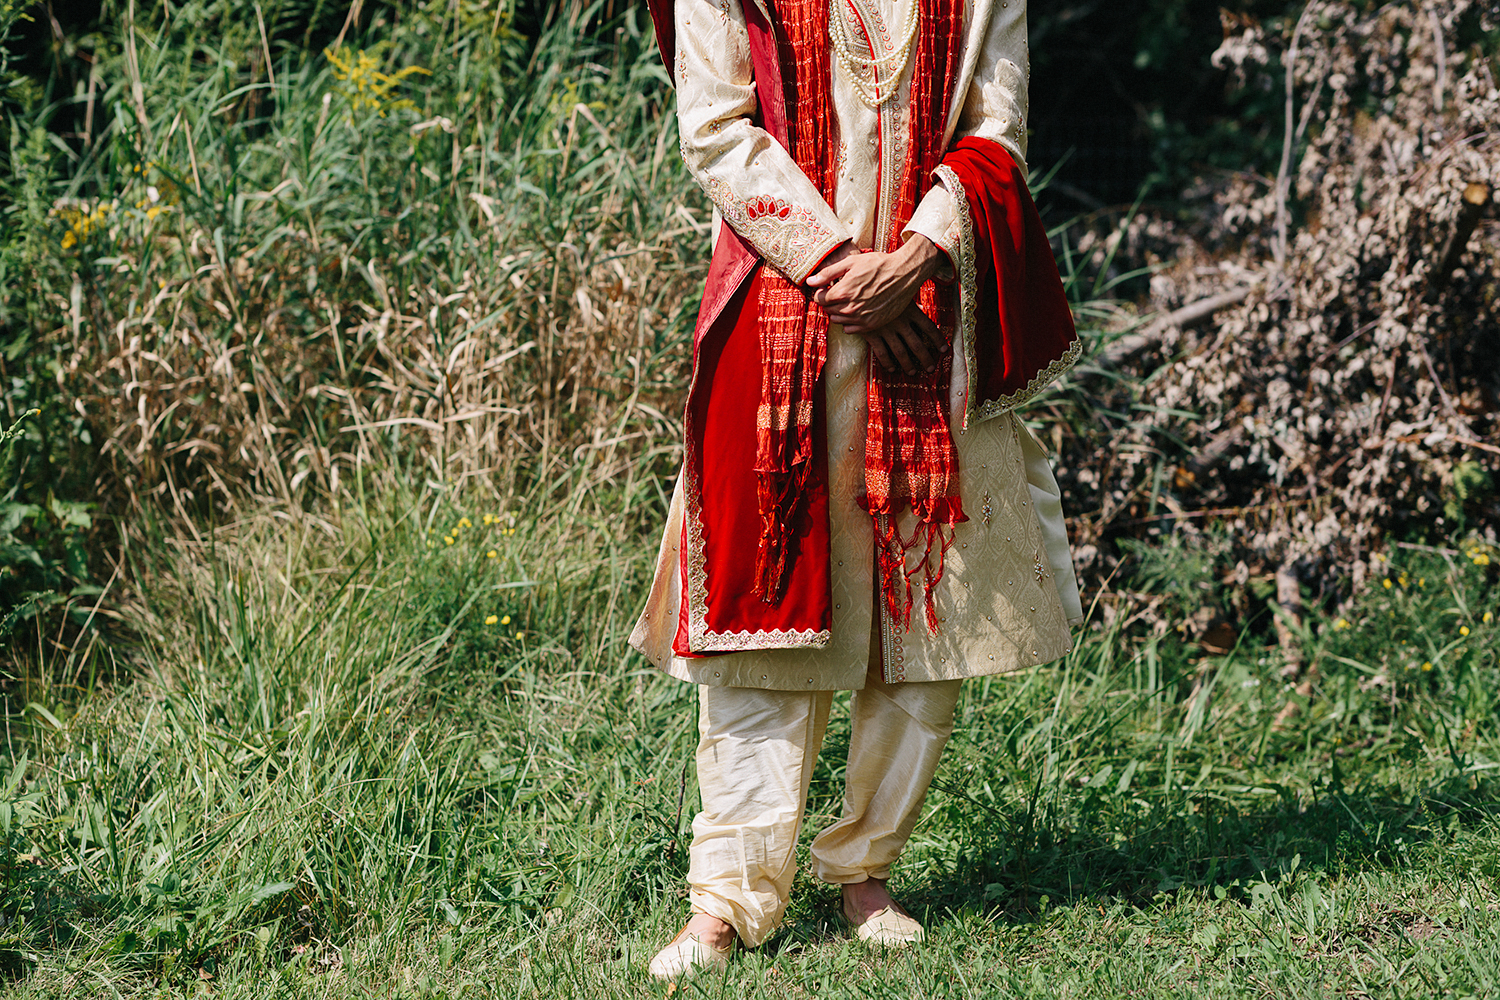 Toronto's-Best-Film-Wedding-Photographers-Multicultural-wedding-specialty-ontario-port-perry-candid-documentary-film-analog-photography-120-35mm-film-portraits-of-sikh-bride-and-groom-cinematic-grooms-attire.jpg